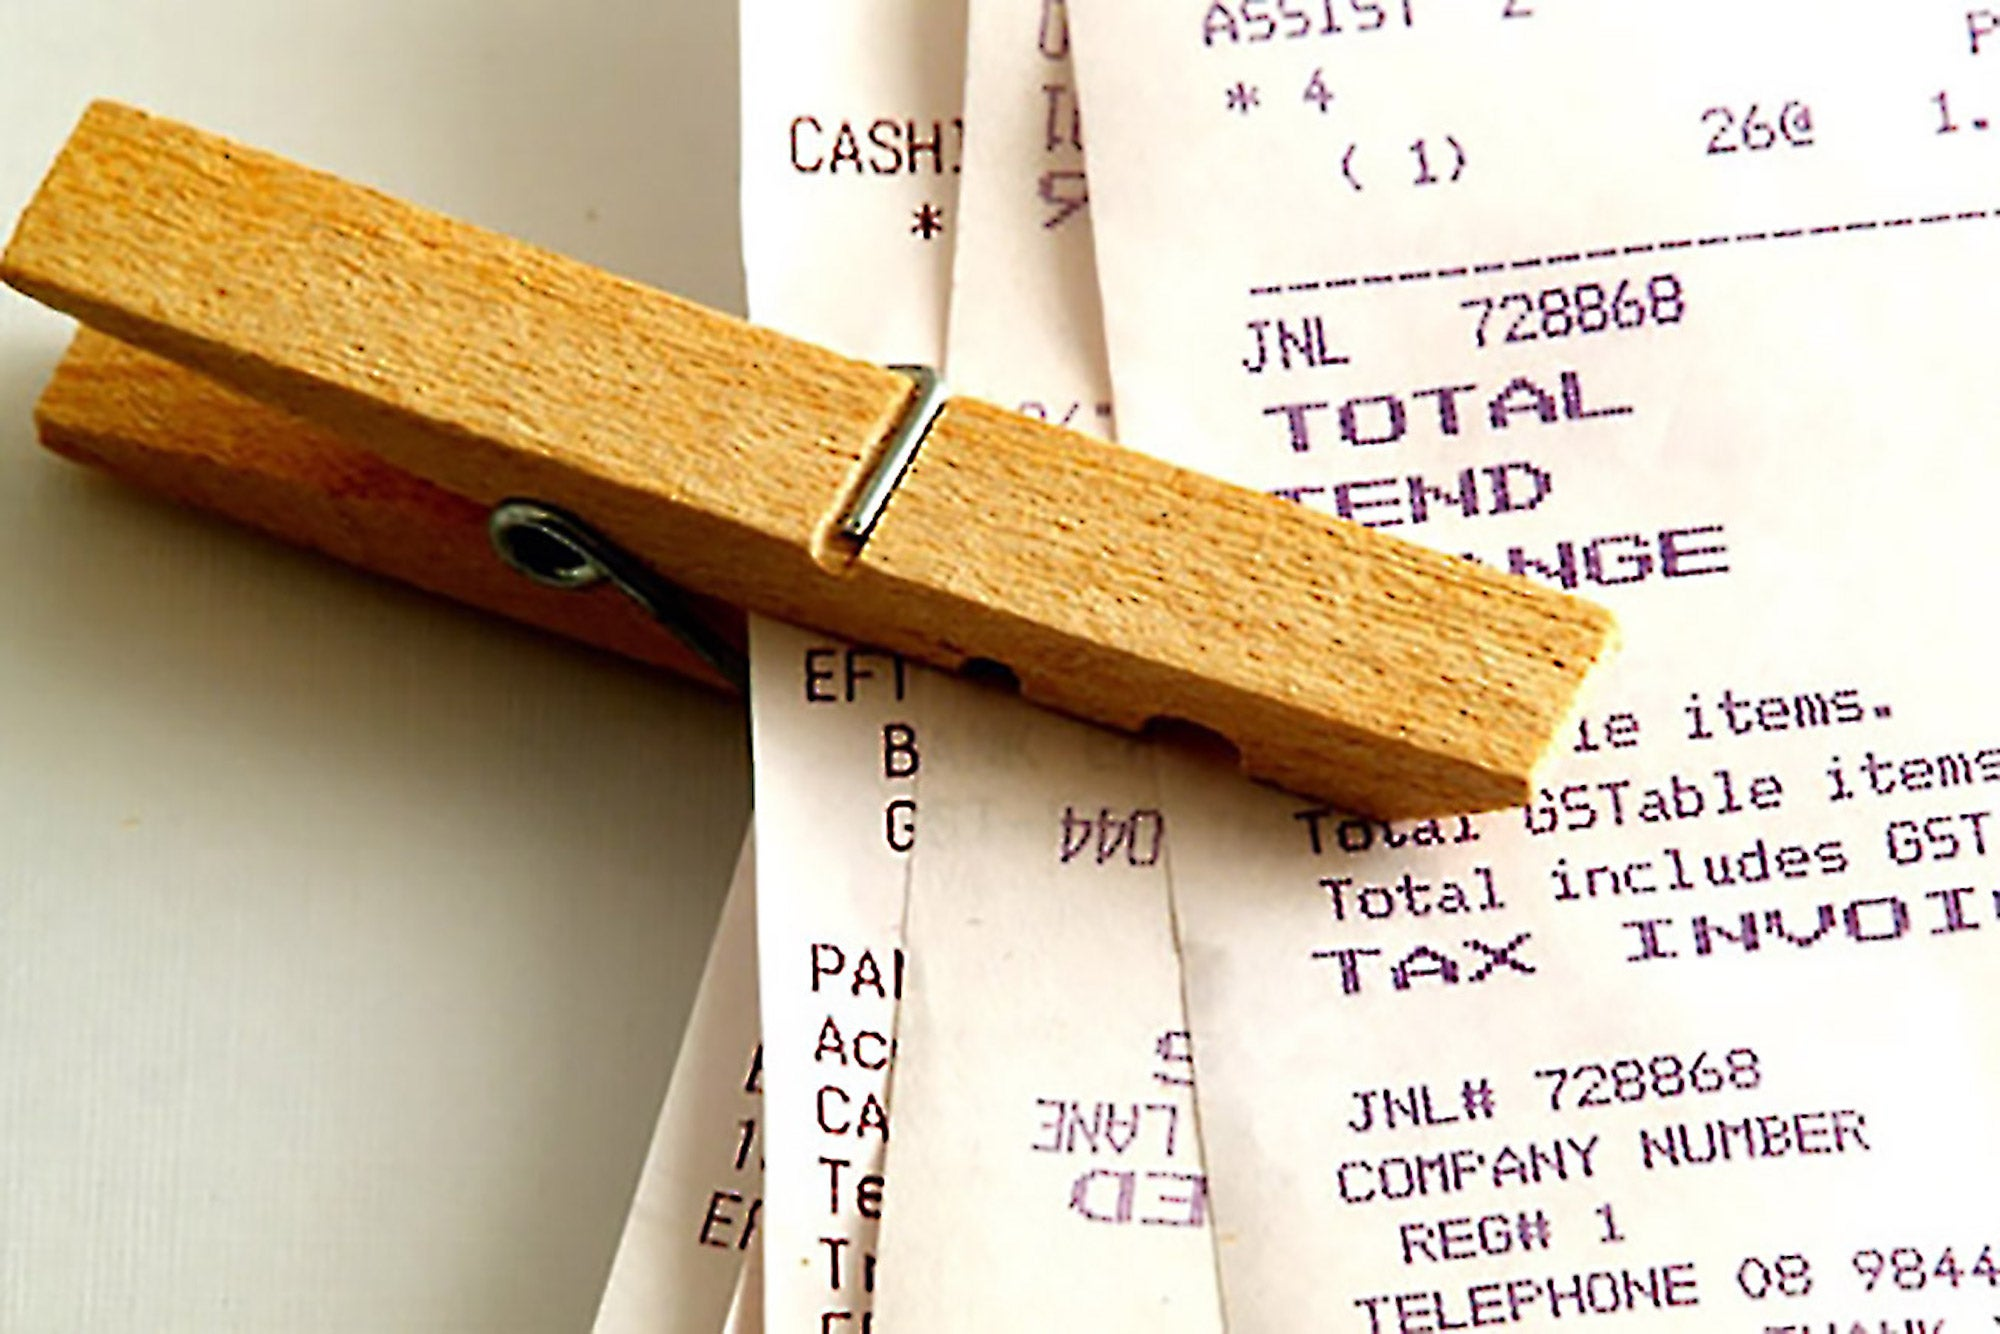 Tips For Keeping Receipts Organized For Tax Time - How to organize invoices